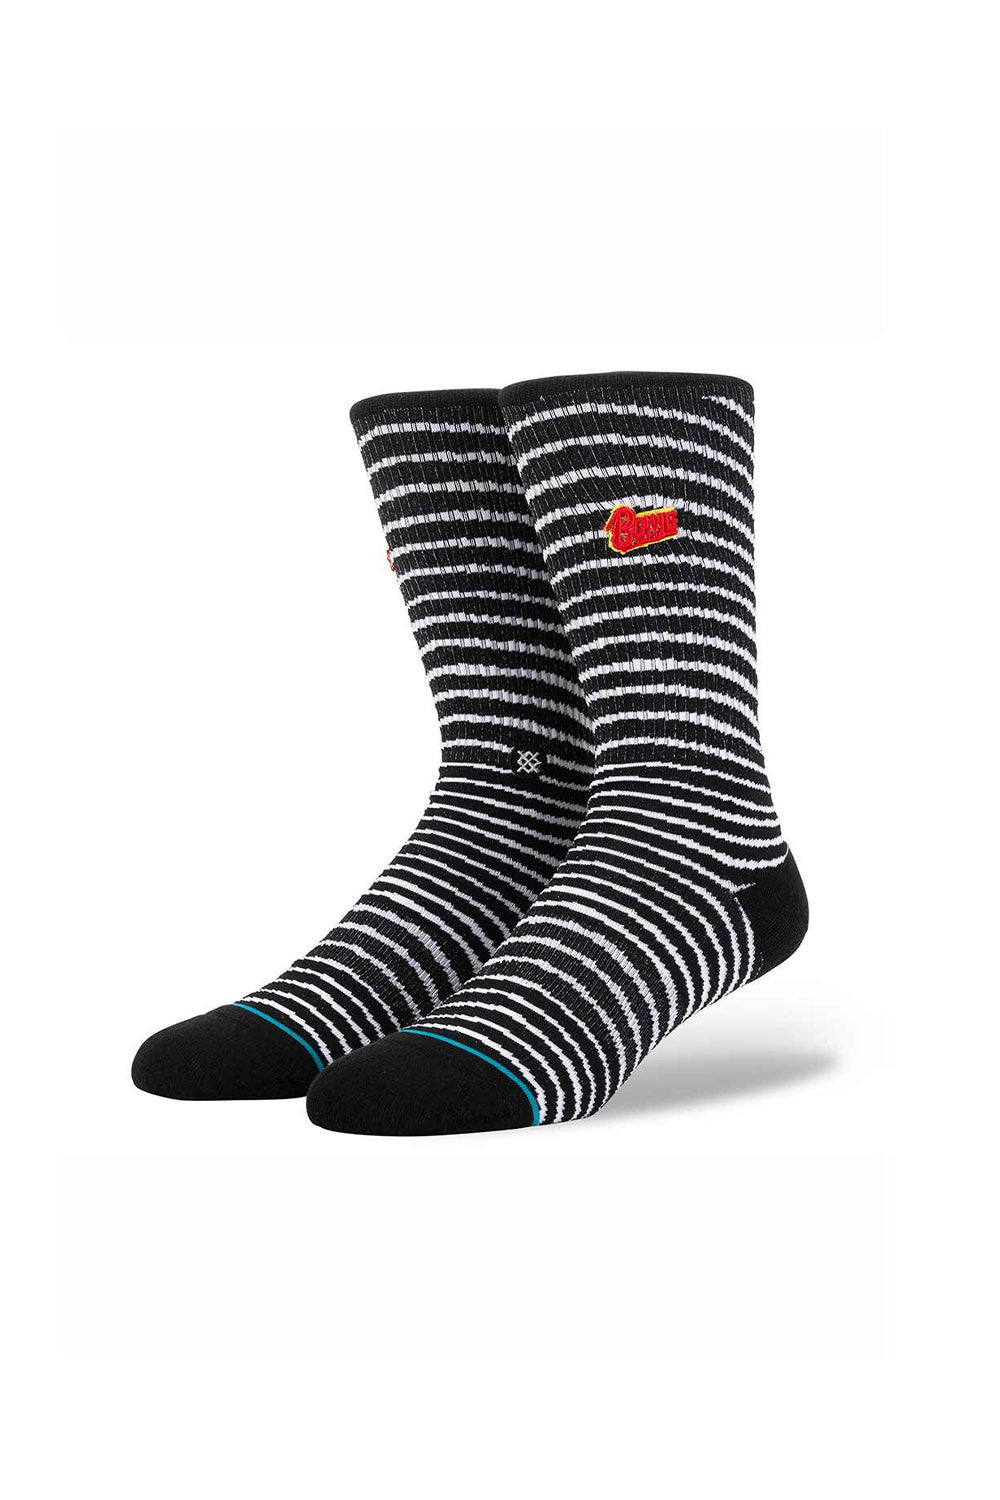 Stance Black Star Socks